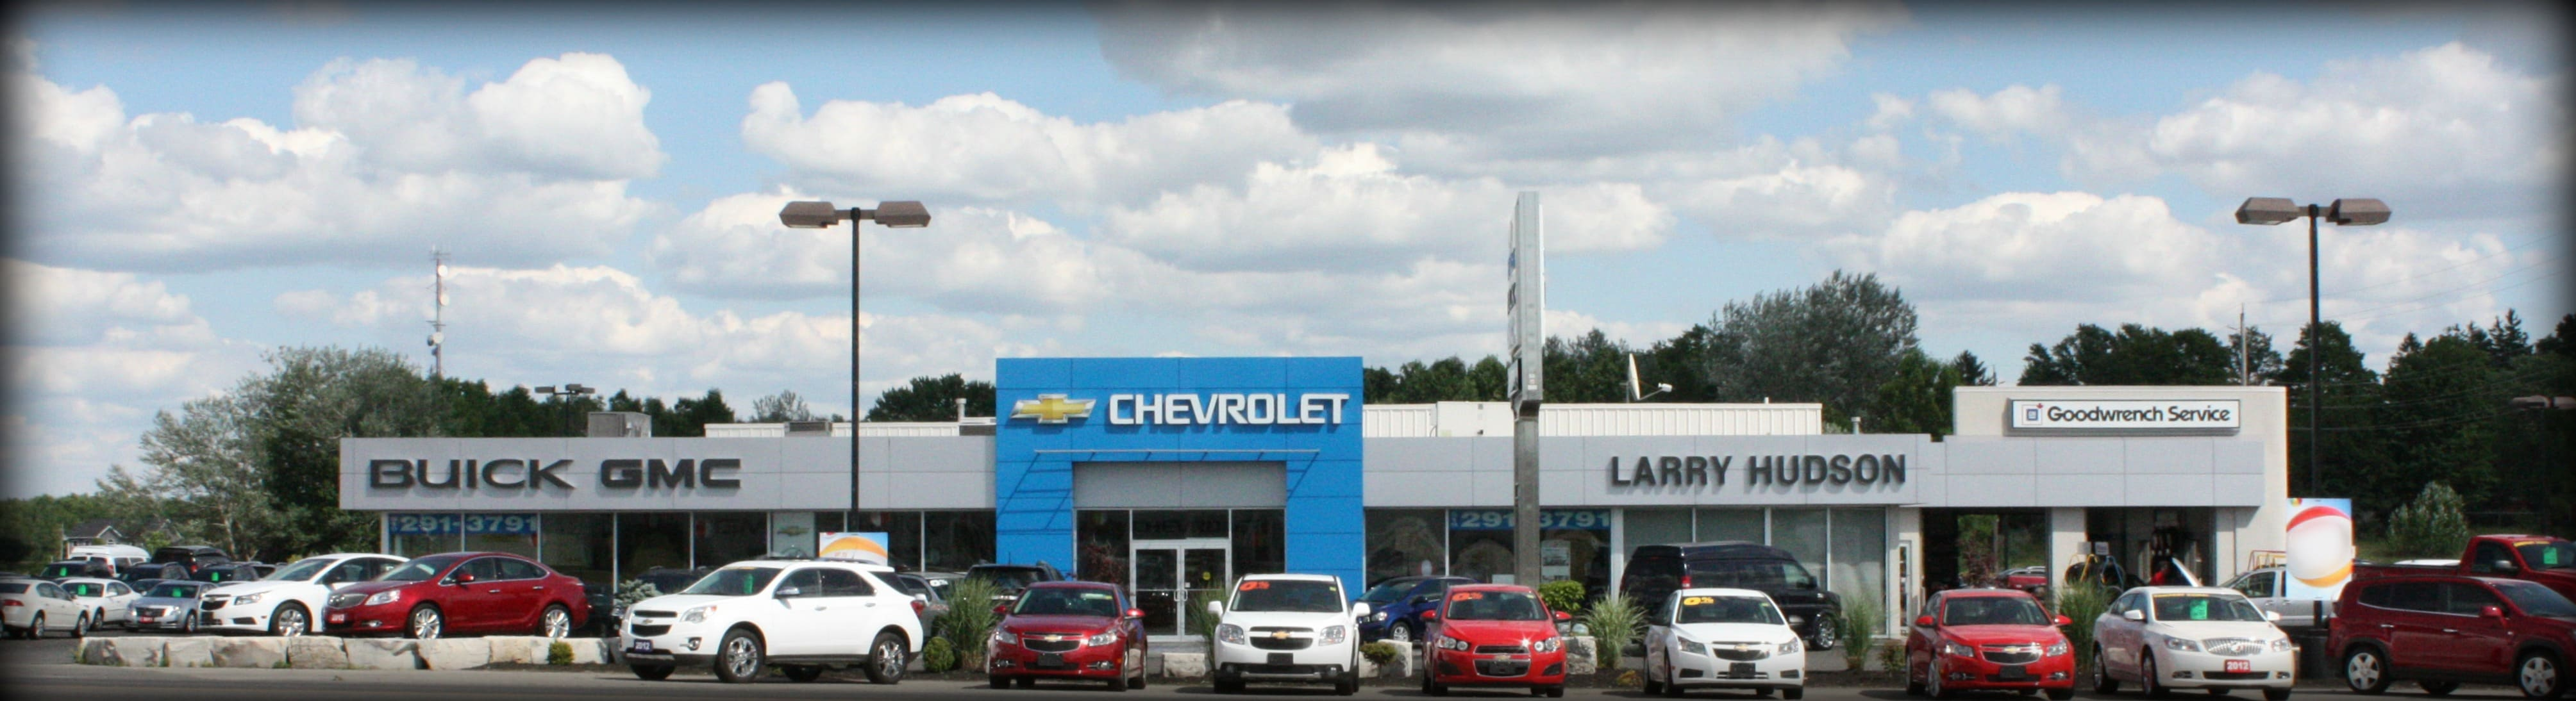 Chevrolet Buick Gmc Chevrolet Car Dealers Kitchener